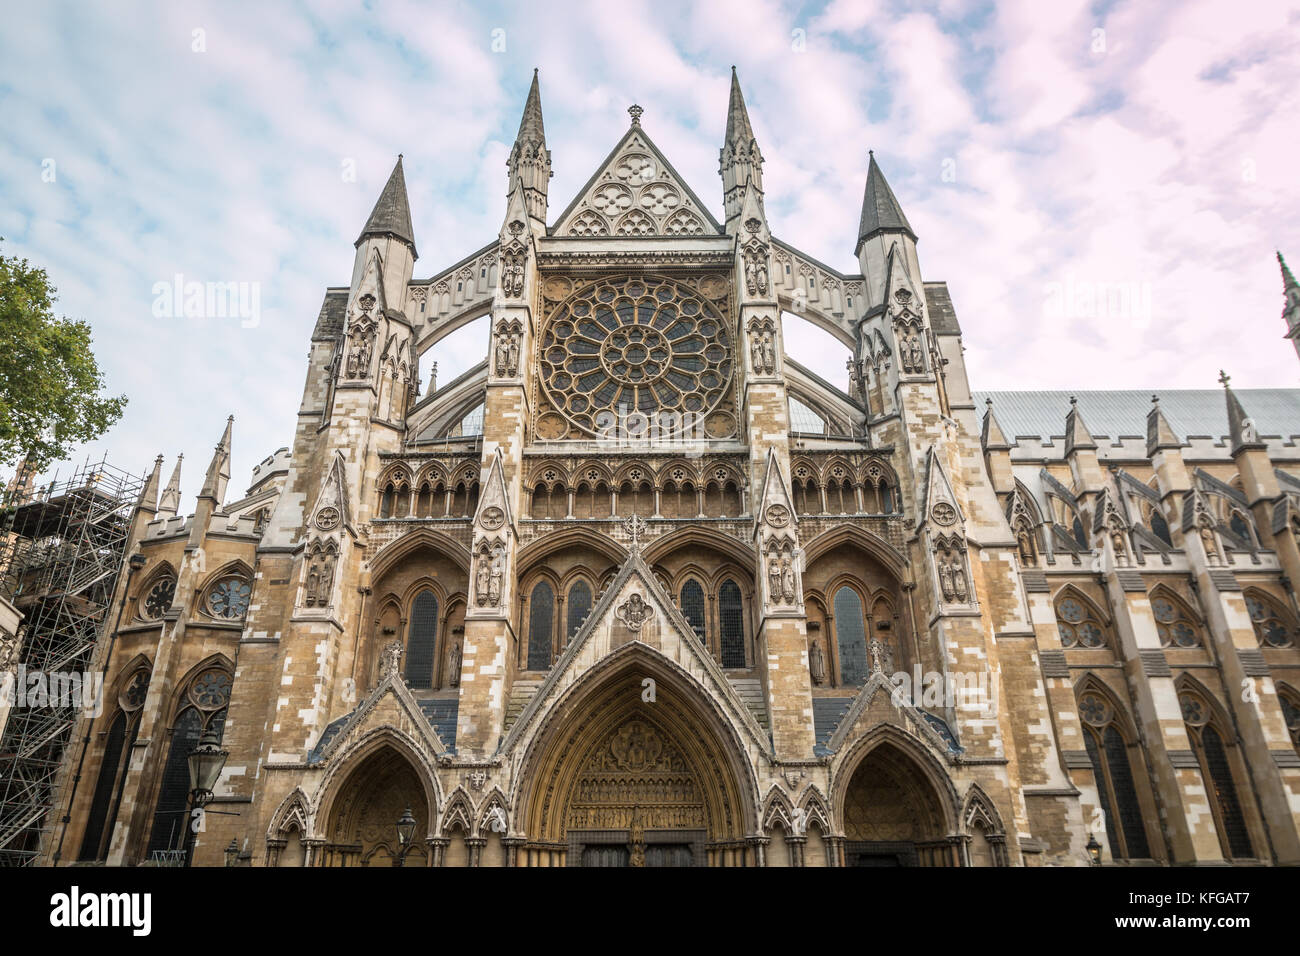 Westminster Abbey in London - Stock Image